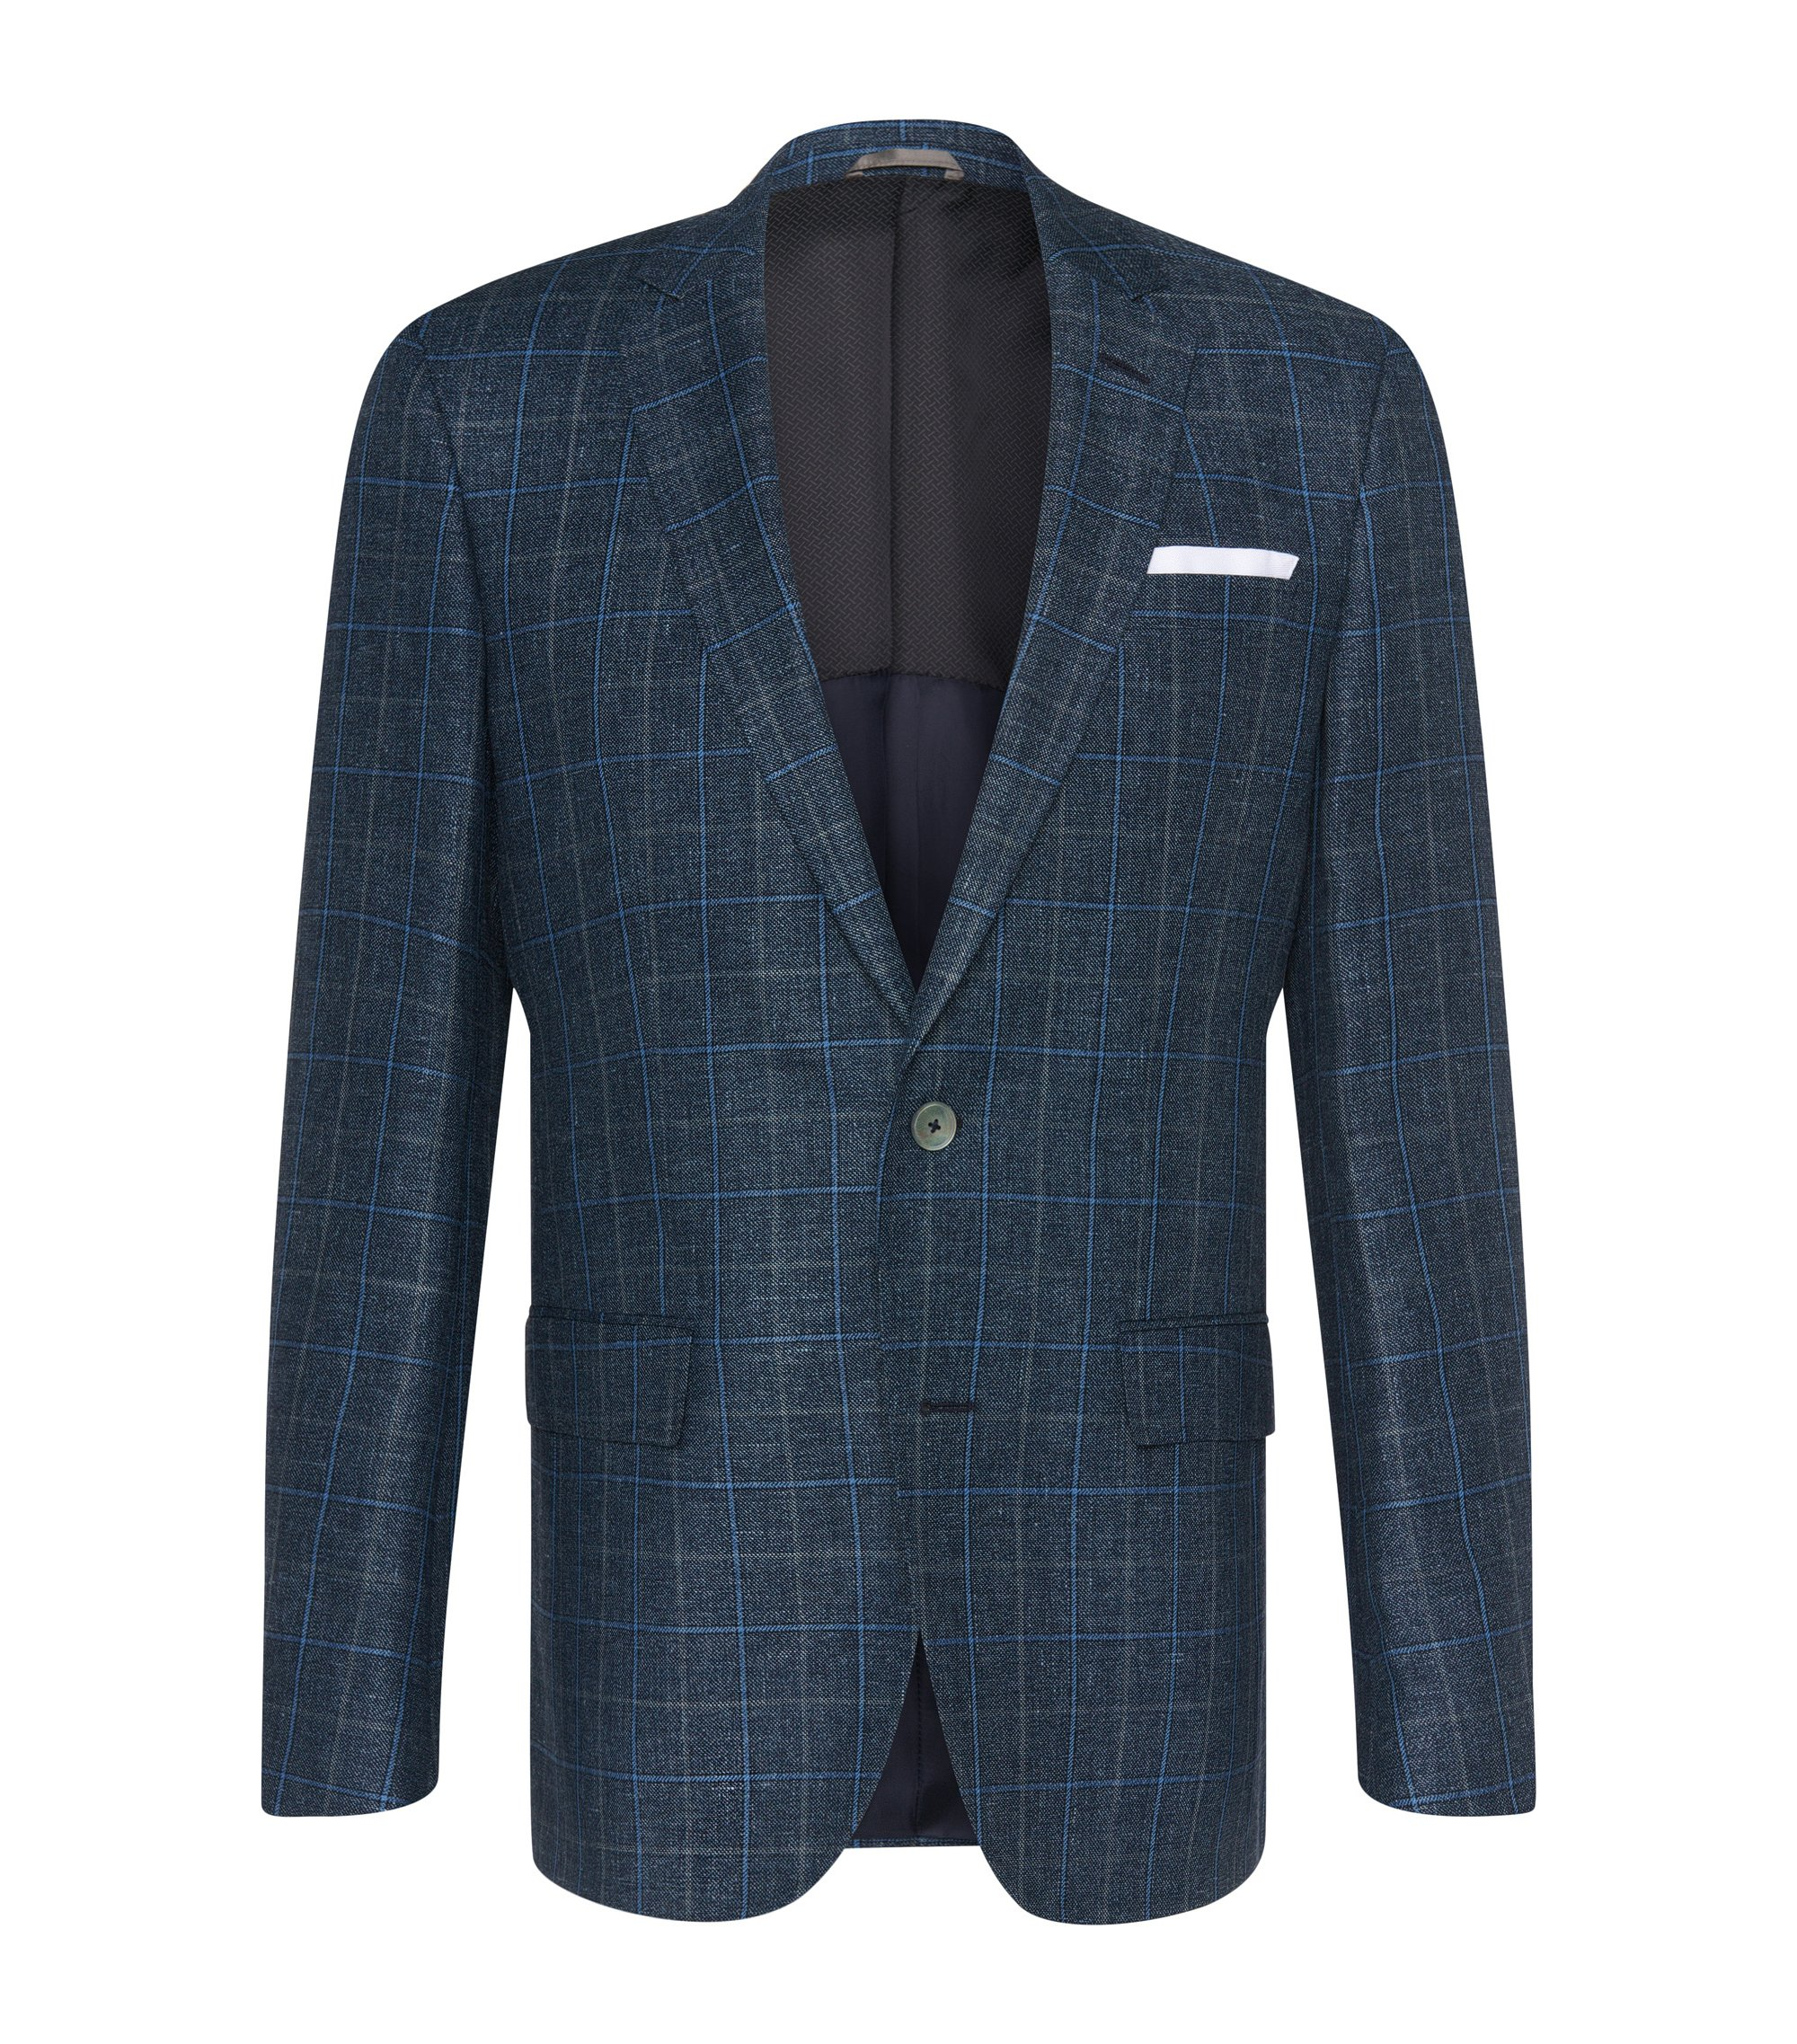 Italian Linen Virgin Wool Sport Coat, Slim Fit | Hutsons, Dark Blue